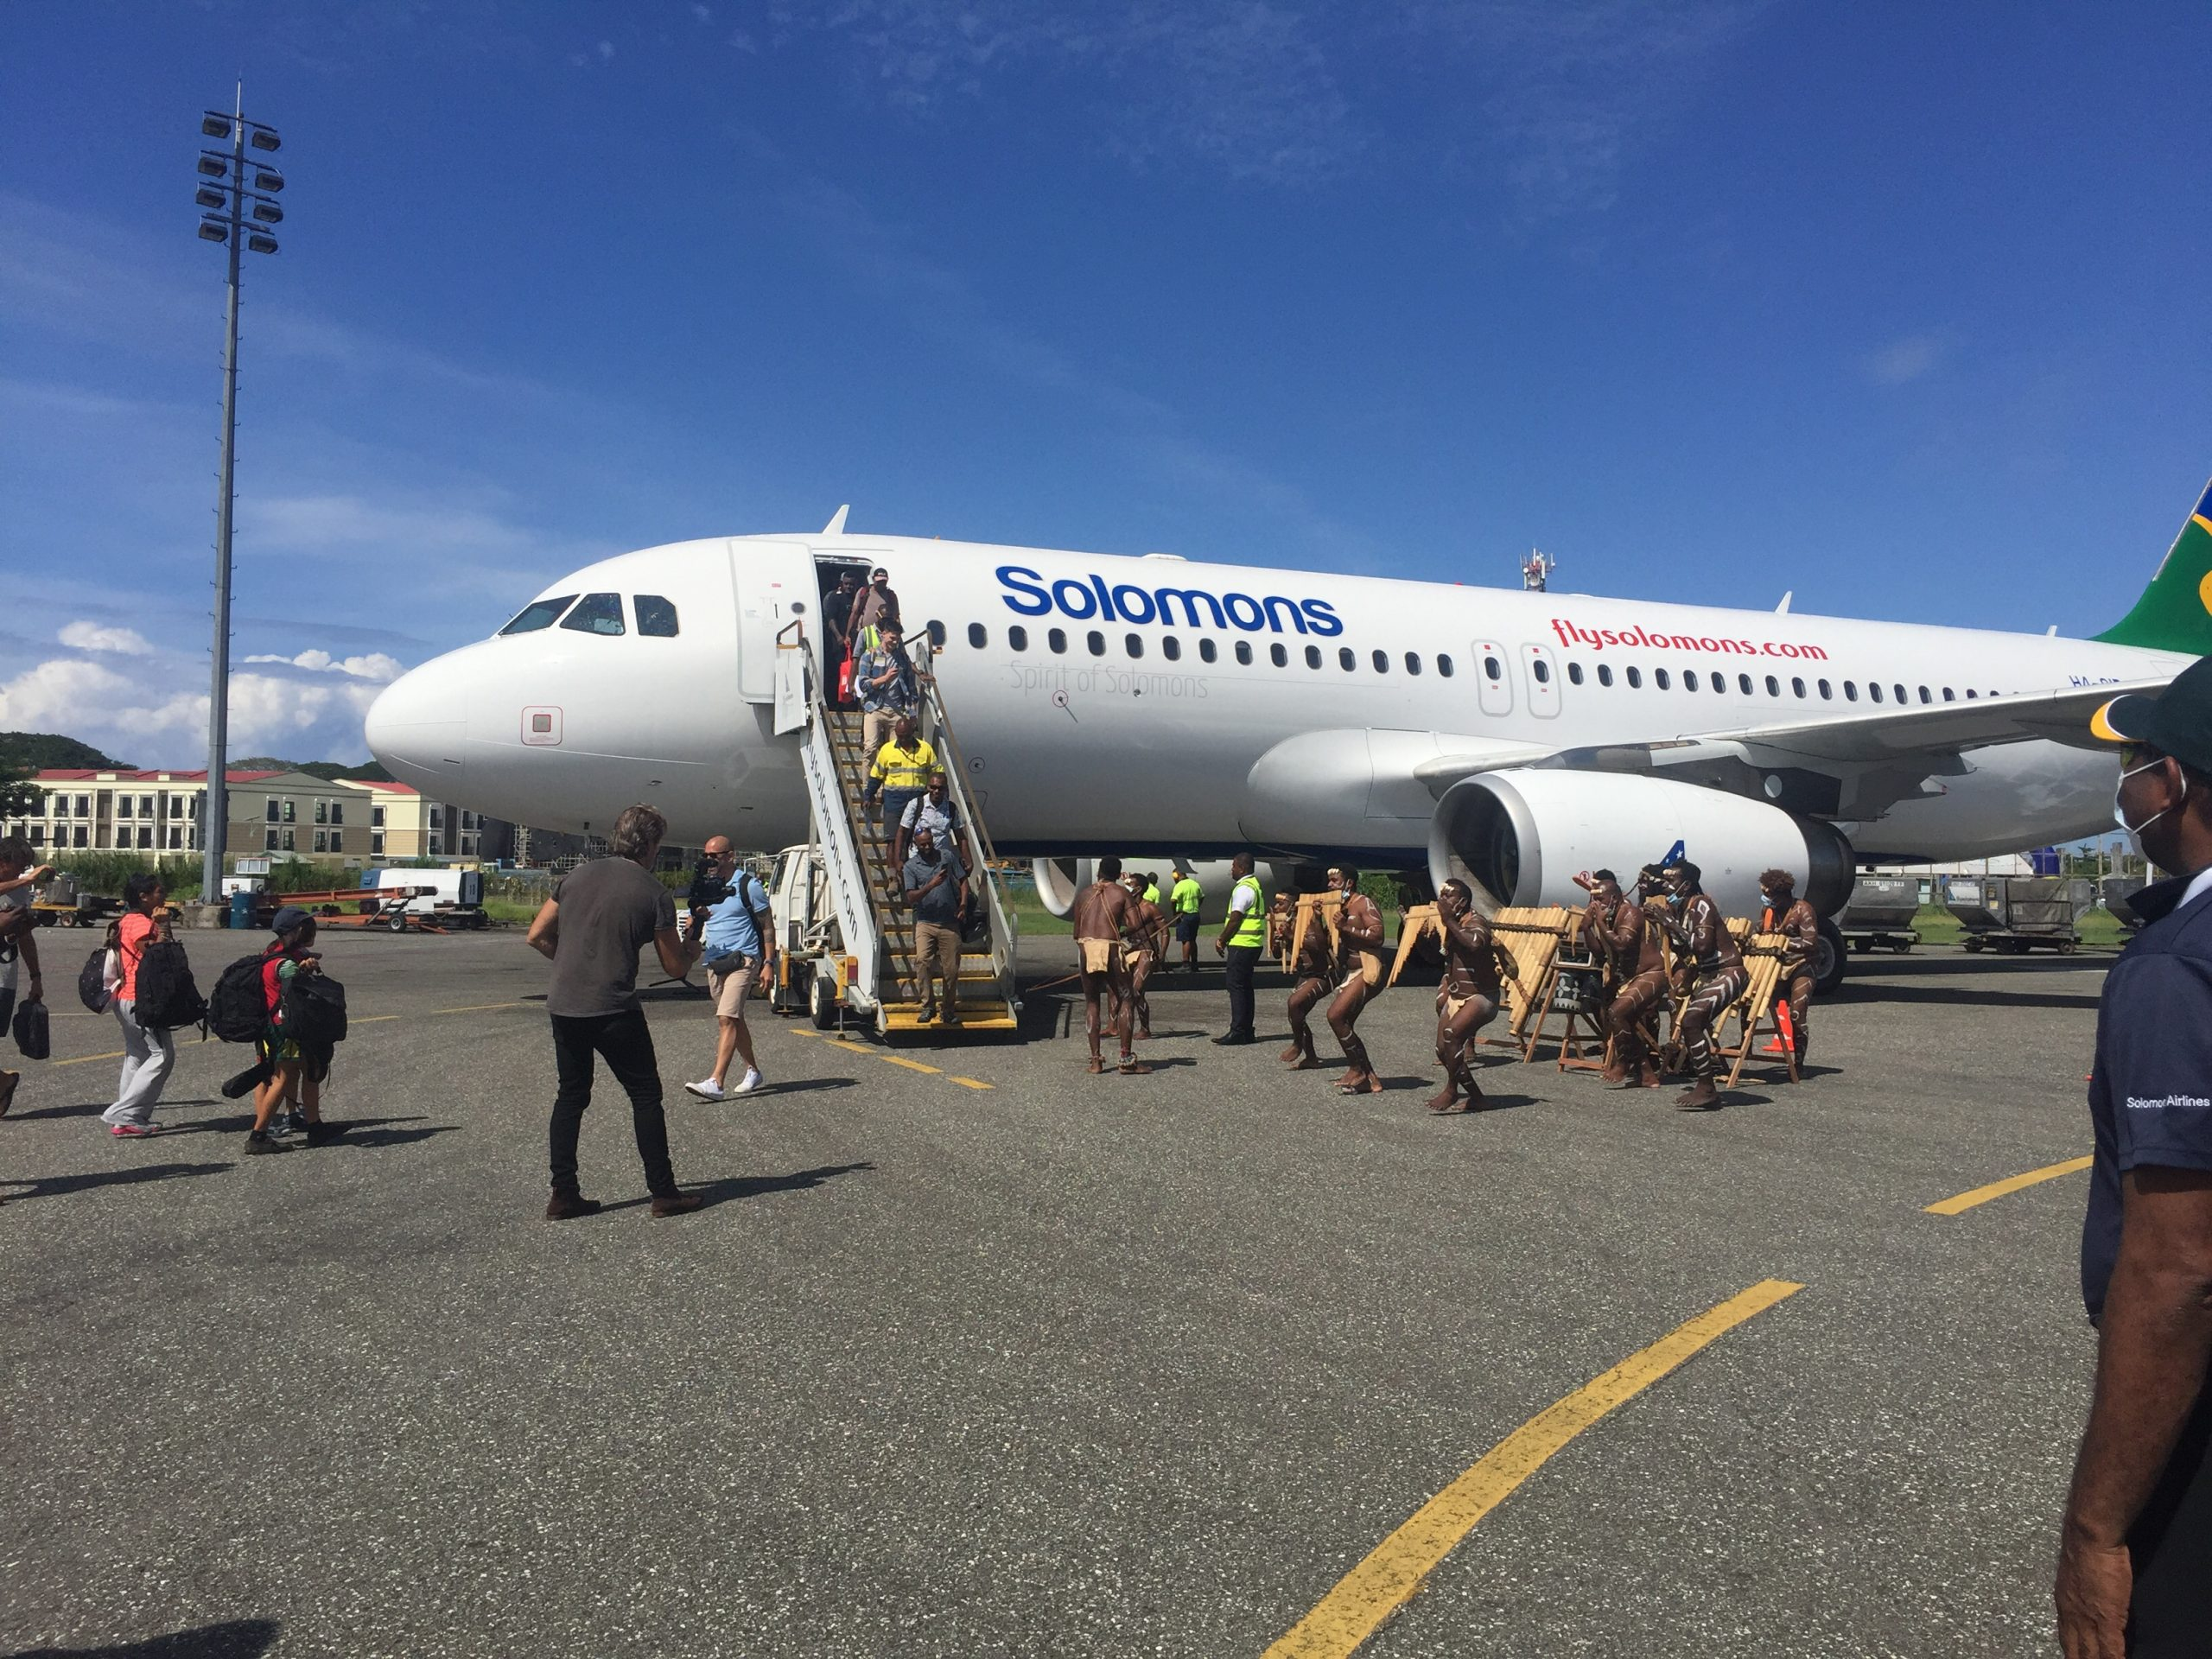 'Spirit of Solomon' airbus inaugurated